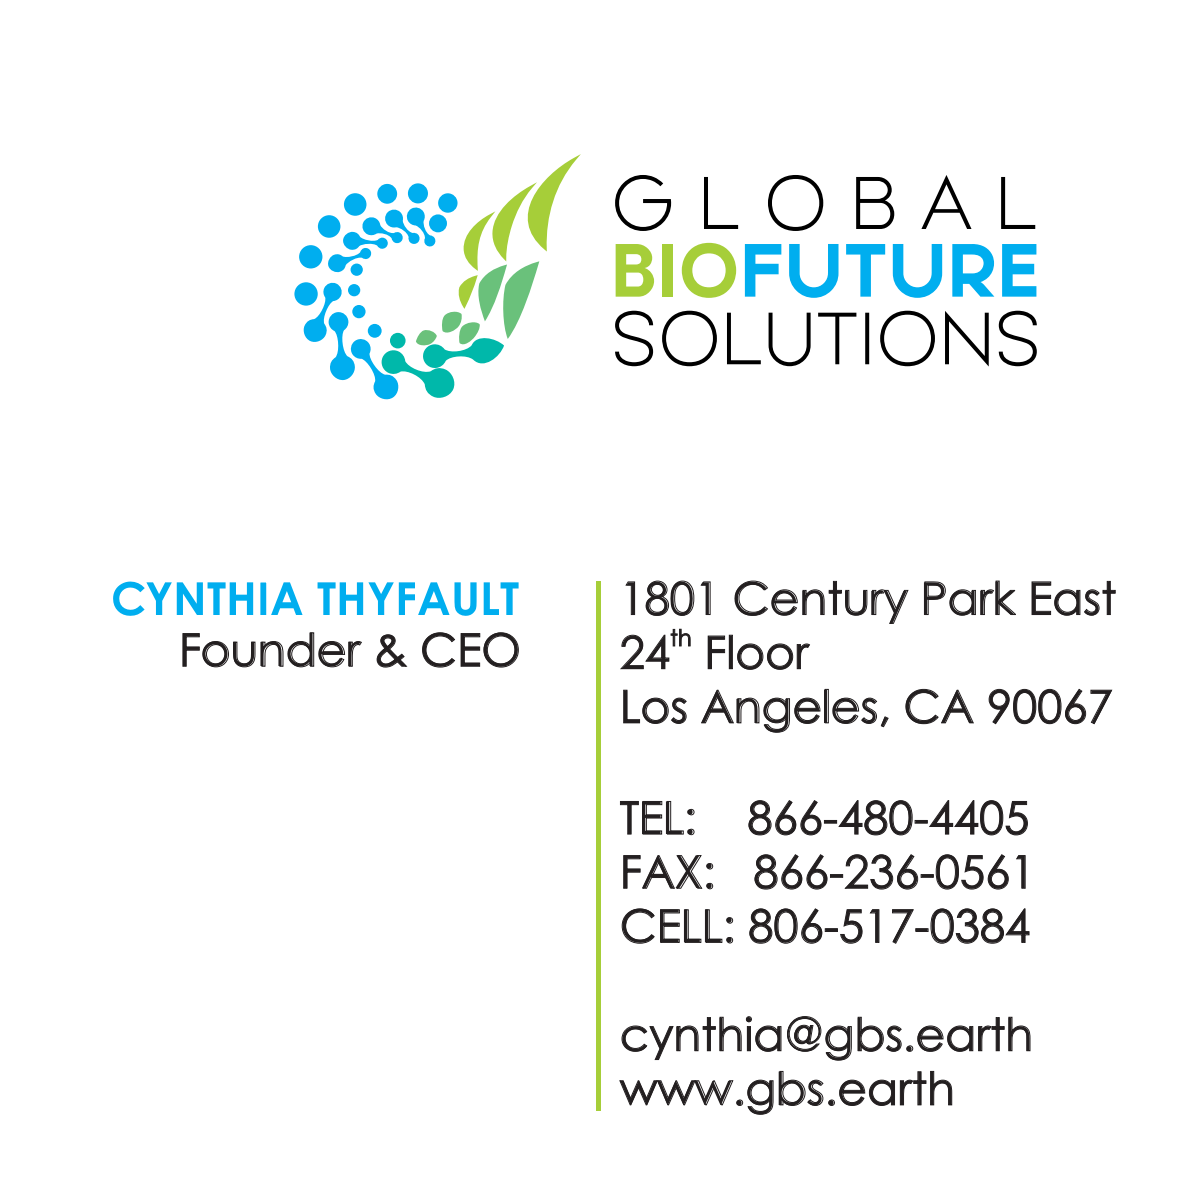 Global BioFuture Solutions and QuantaVision Design Packages